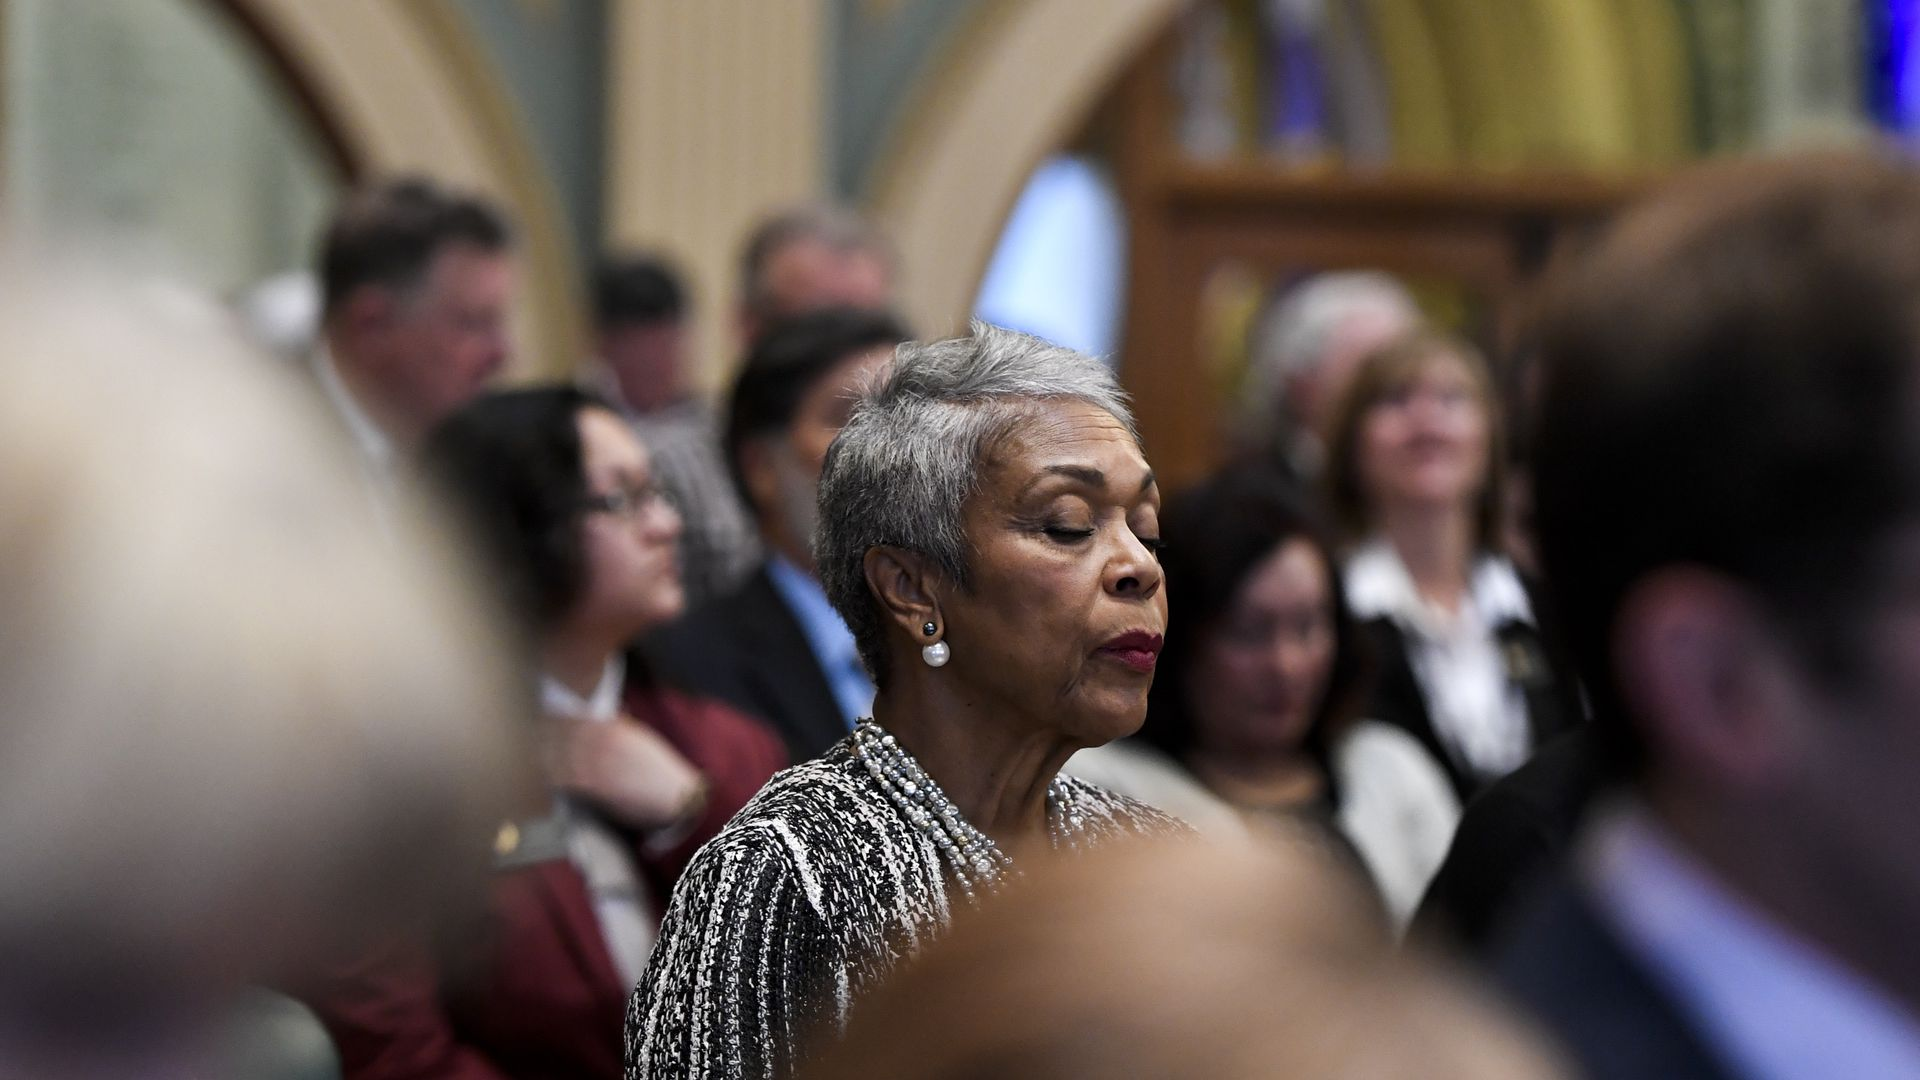 State Rep. Janet Buckner stands on the House floor with her eyes closed.